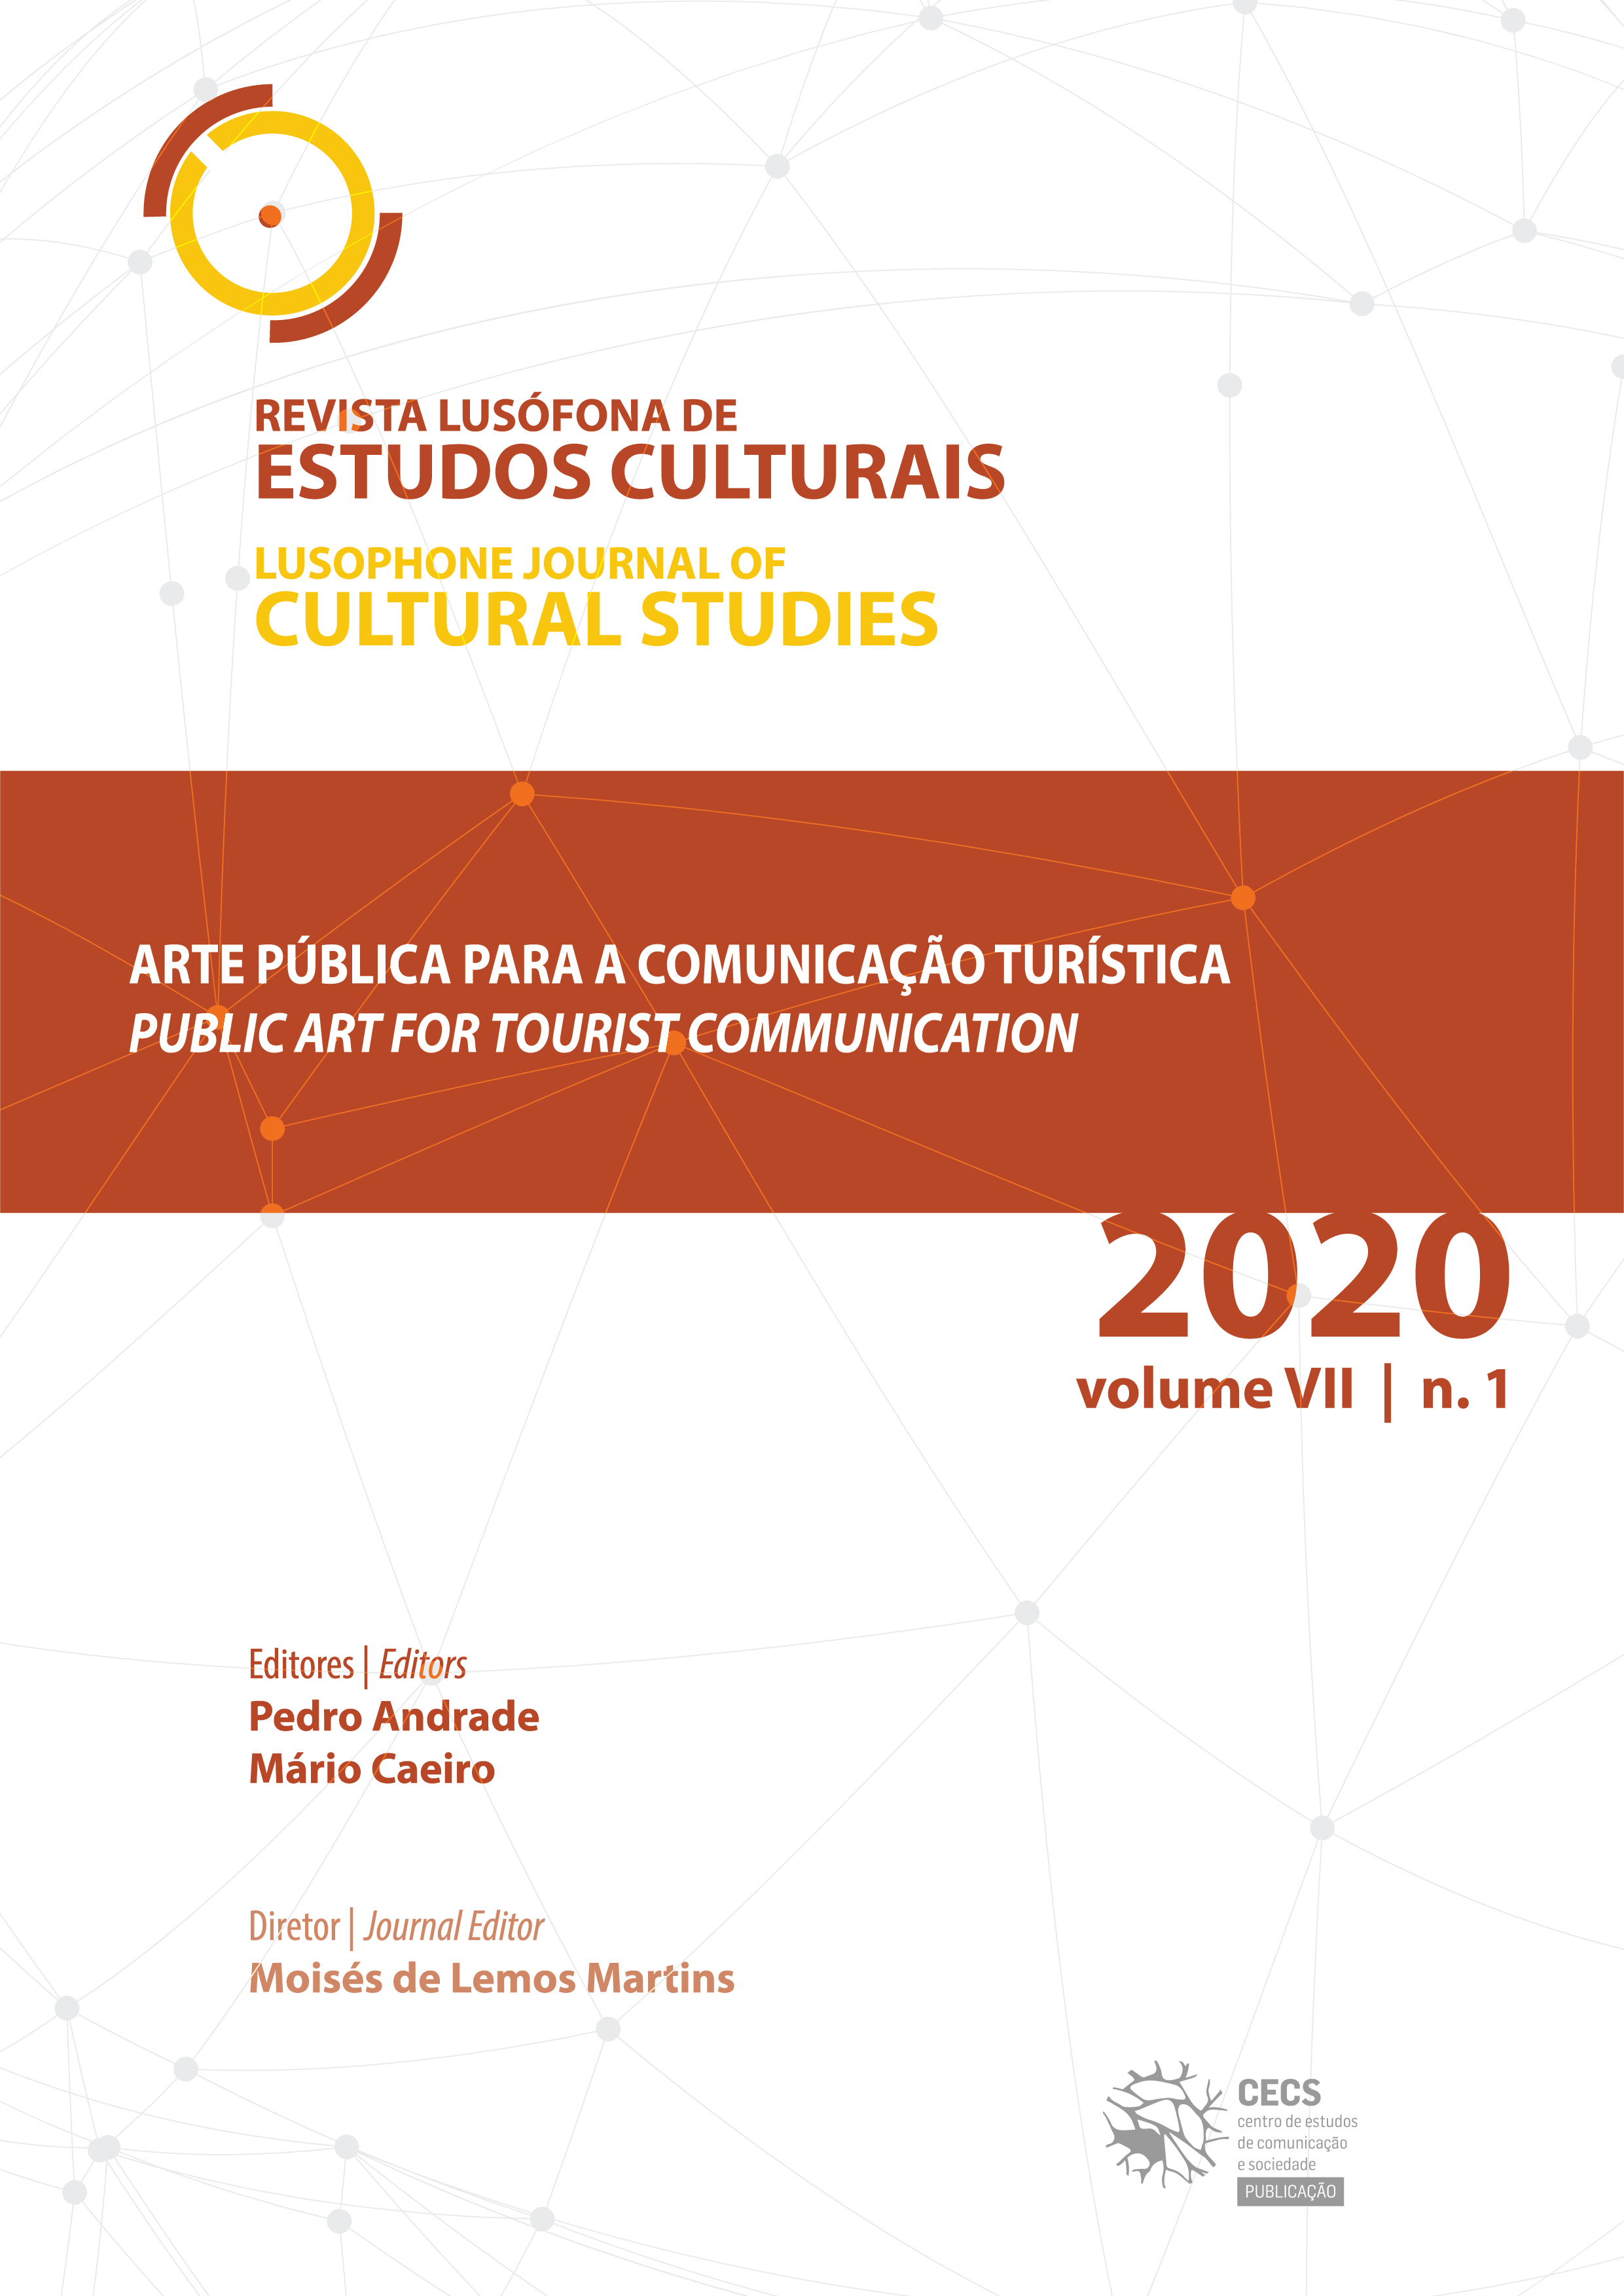 """New volume of Lusophone Journal of Cultural Studies on """"Public art for tourist communication"""""""